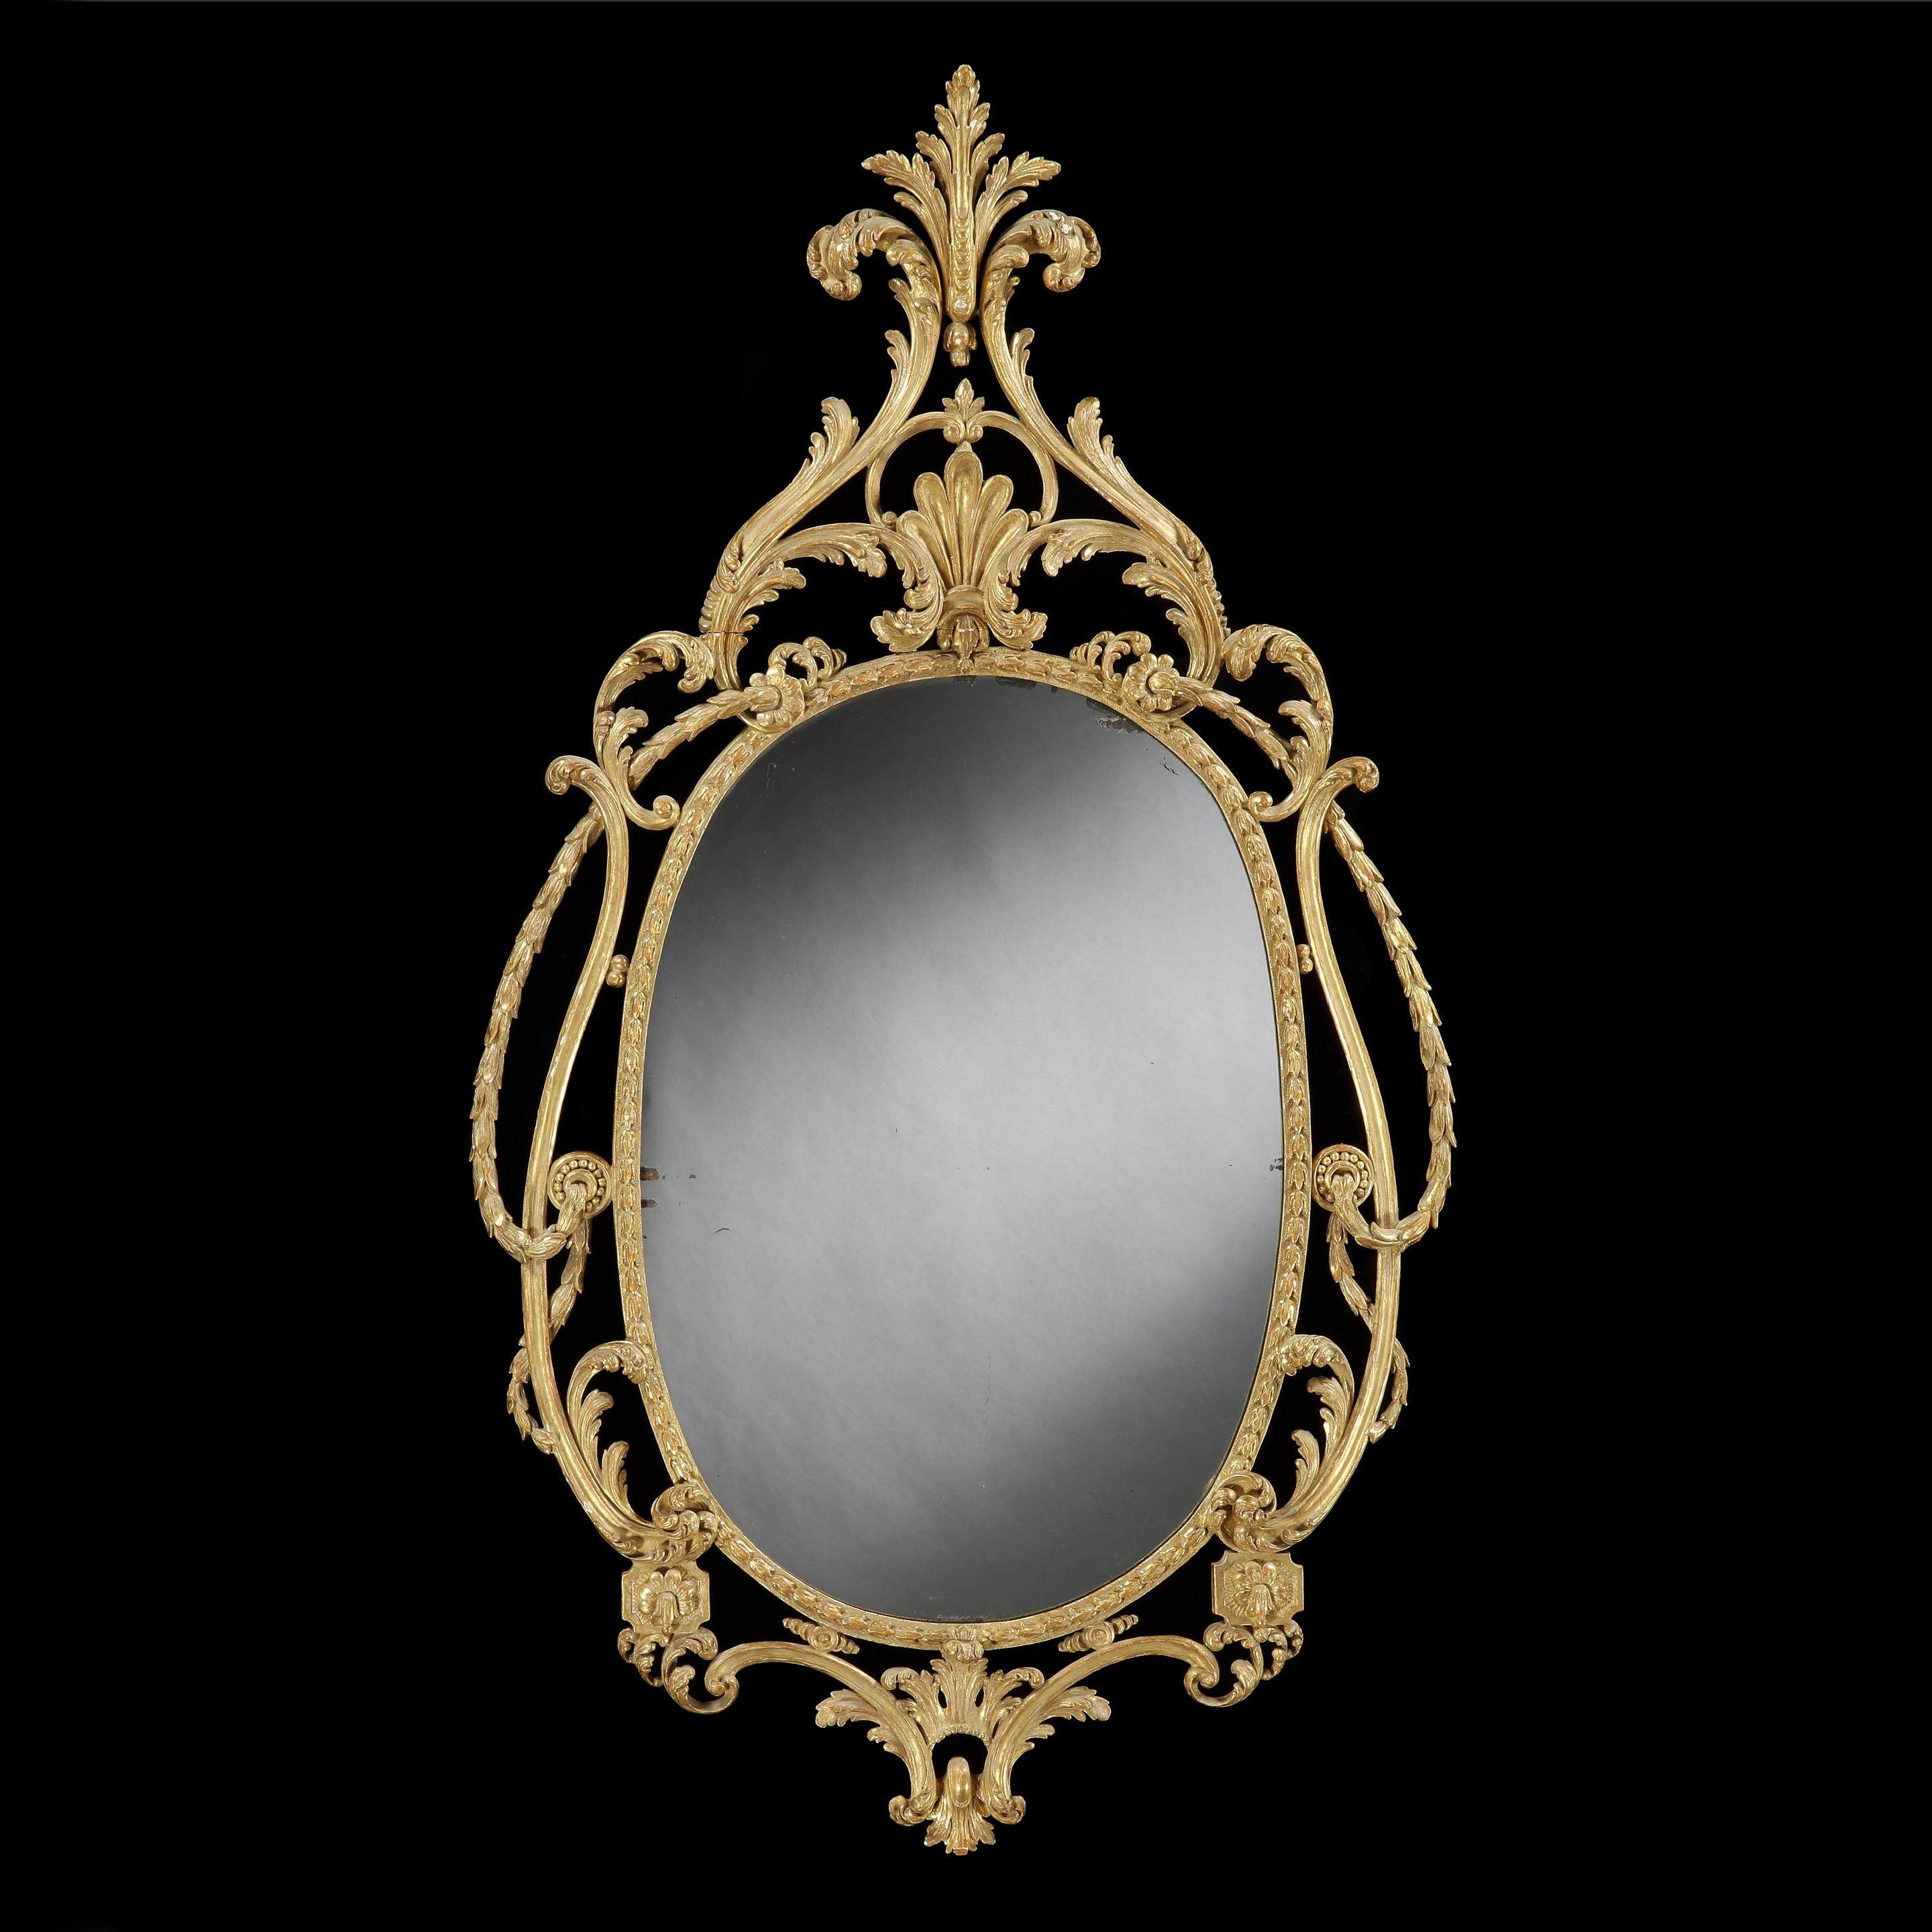 An Important George Iii Rococo Mirror (1770 England) From Tarquin Pertaining To Roccoco Mirror (Image 6 of 20)